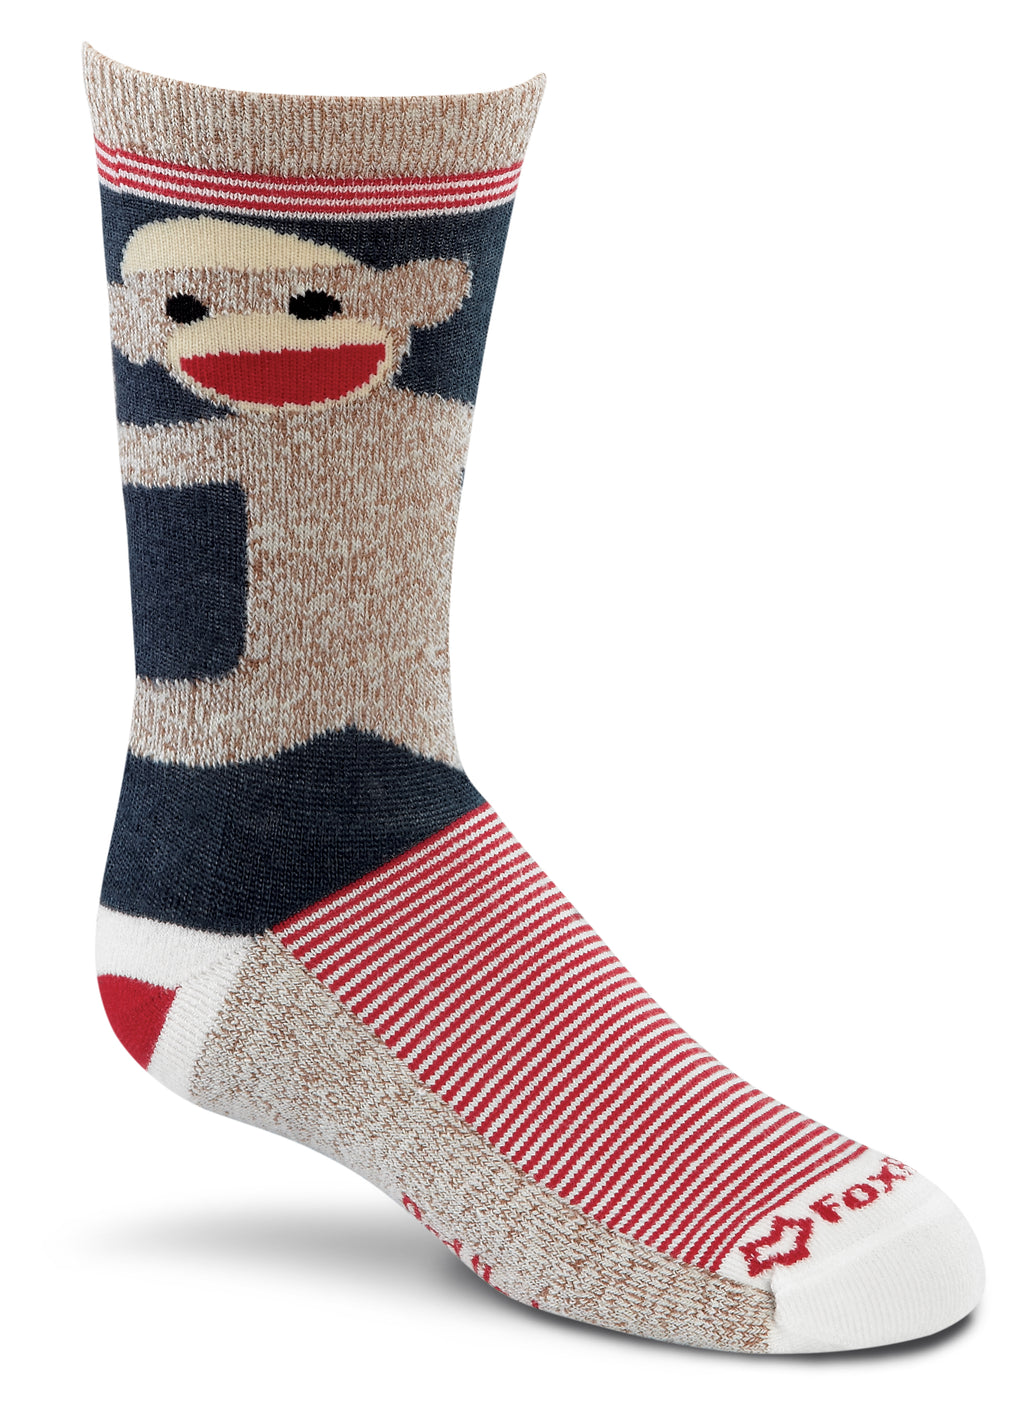 Fox River Monkey Hugs Kids Lightweight Crew Socks